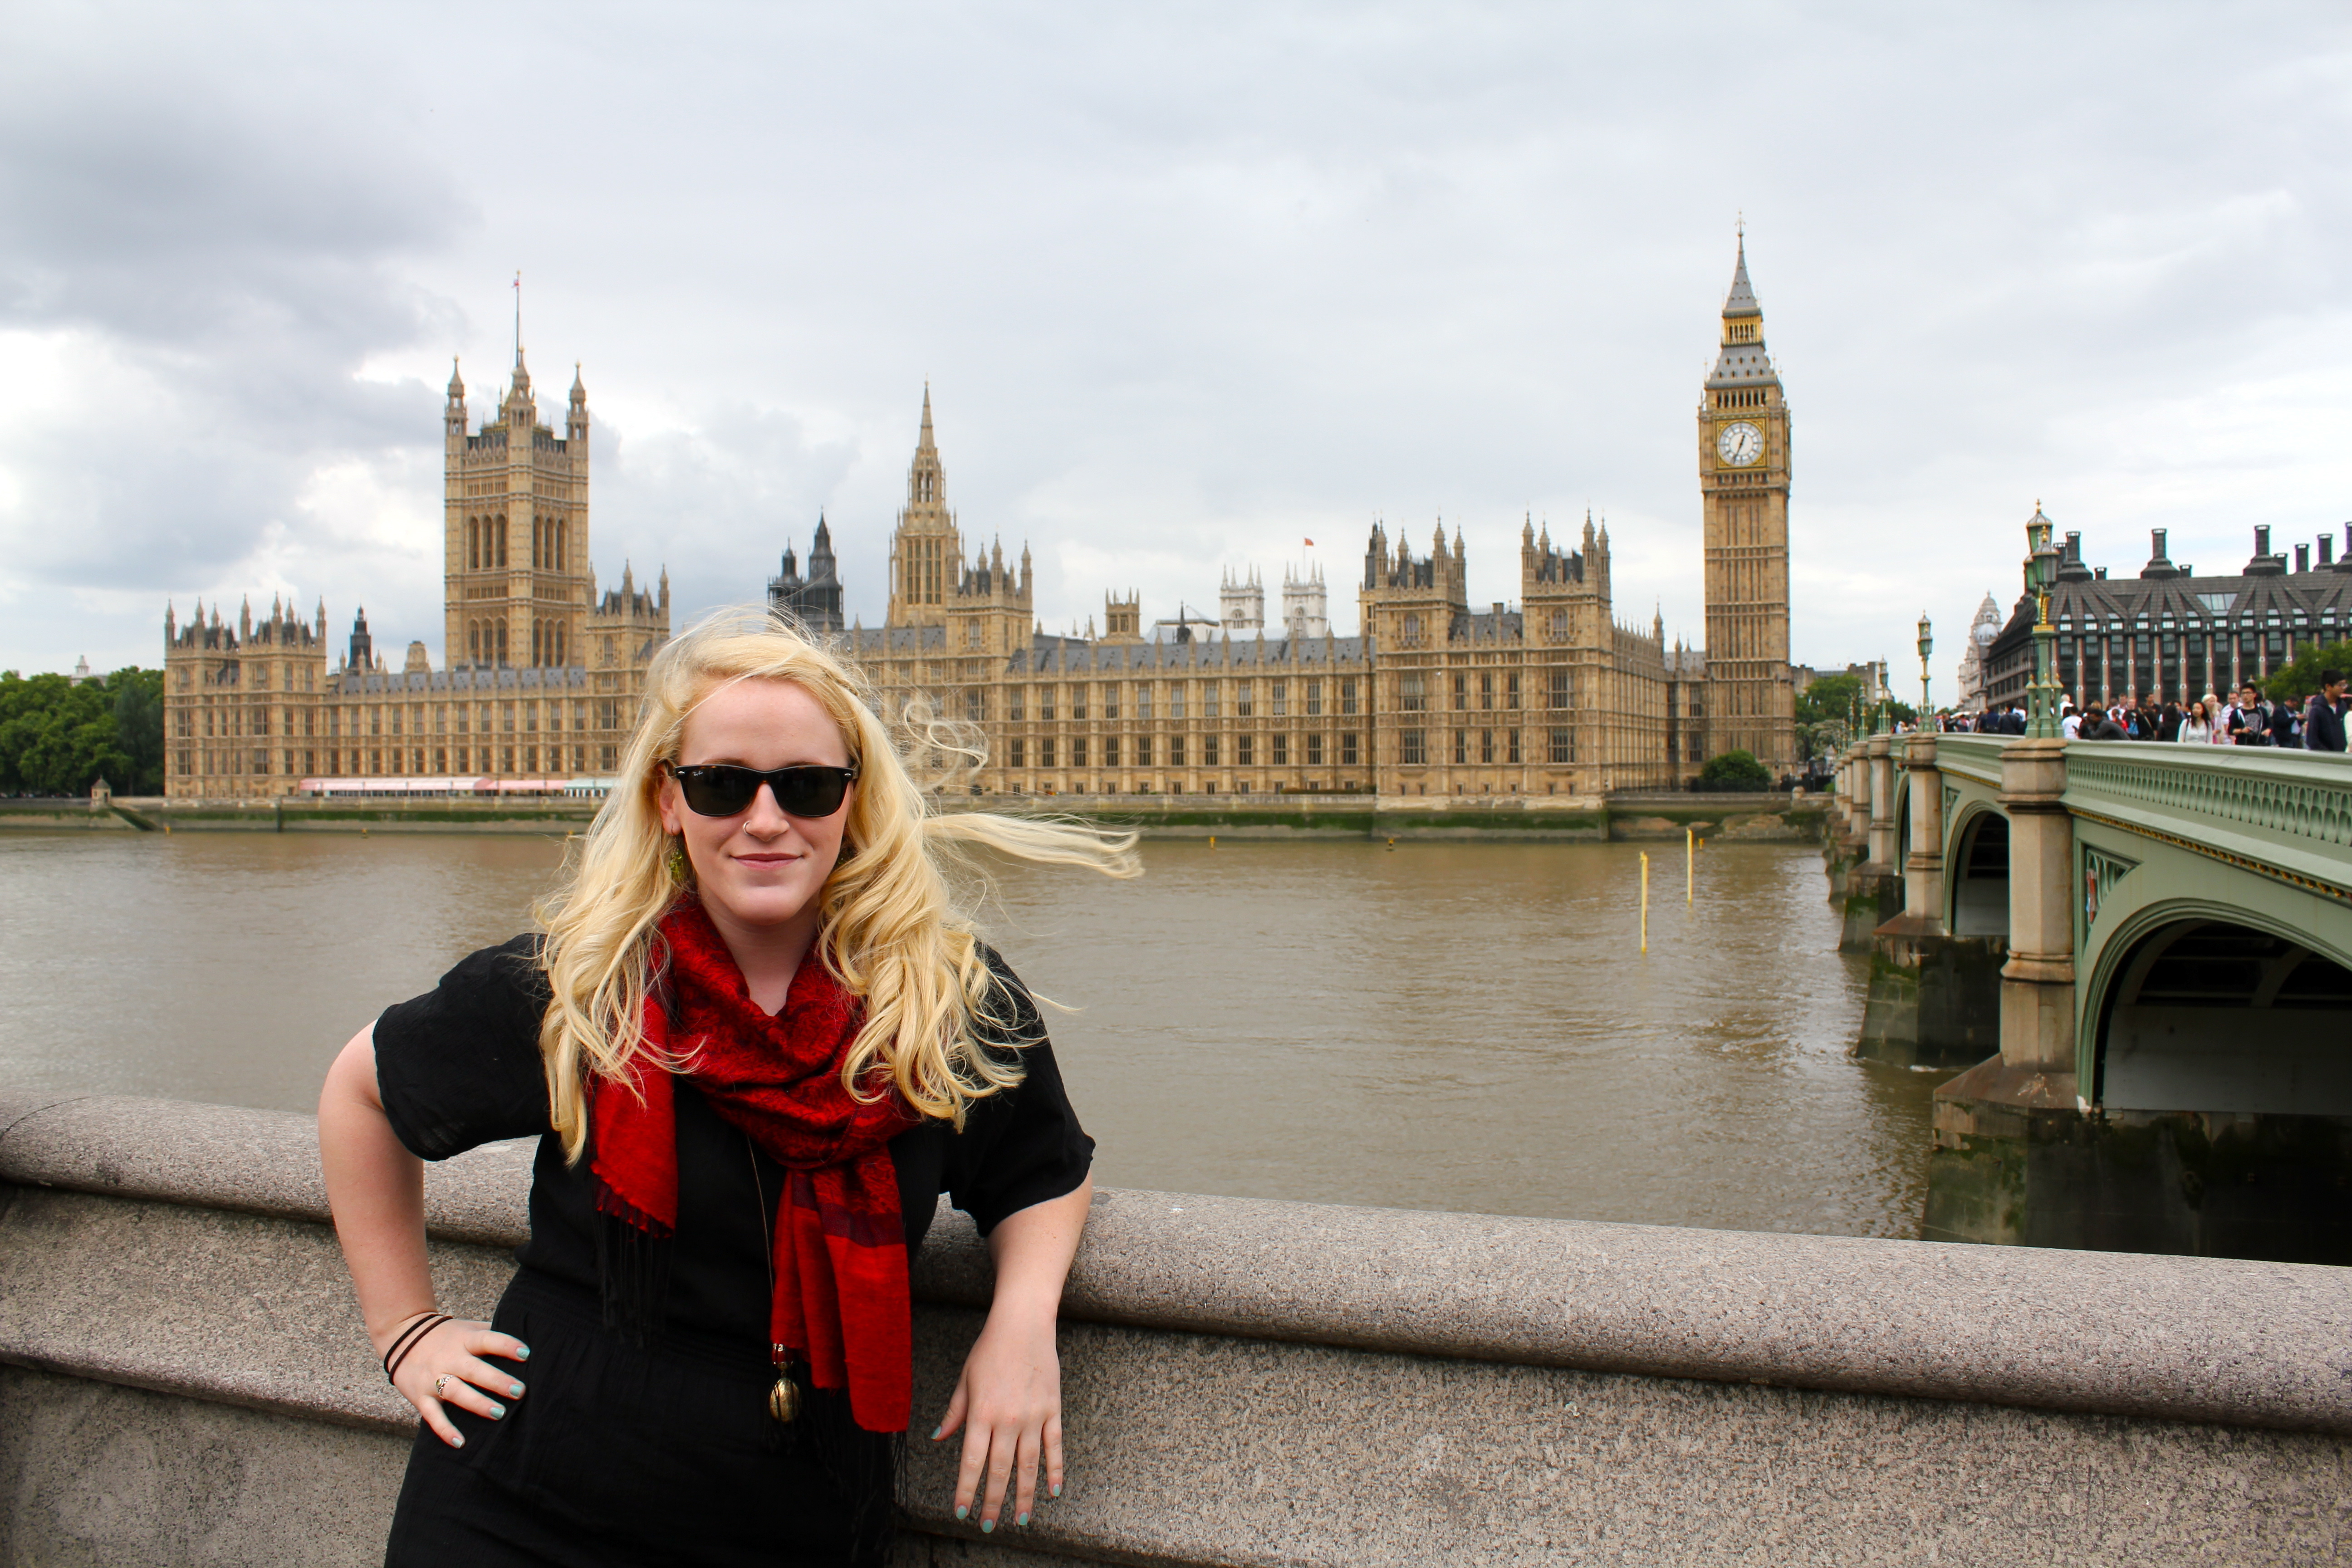 Meela in front of British Parliament. (credit: Meela Dudley | Publisher)